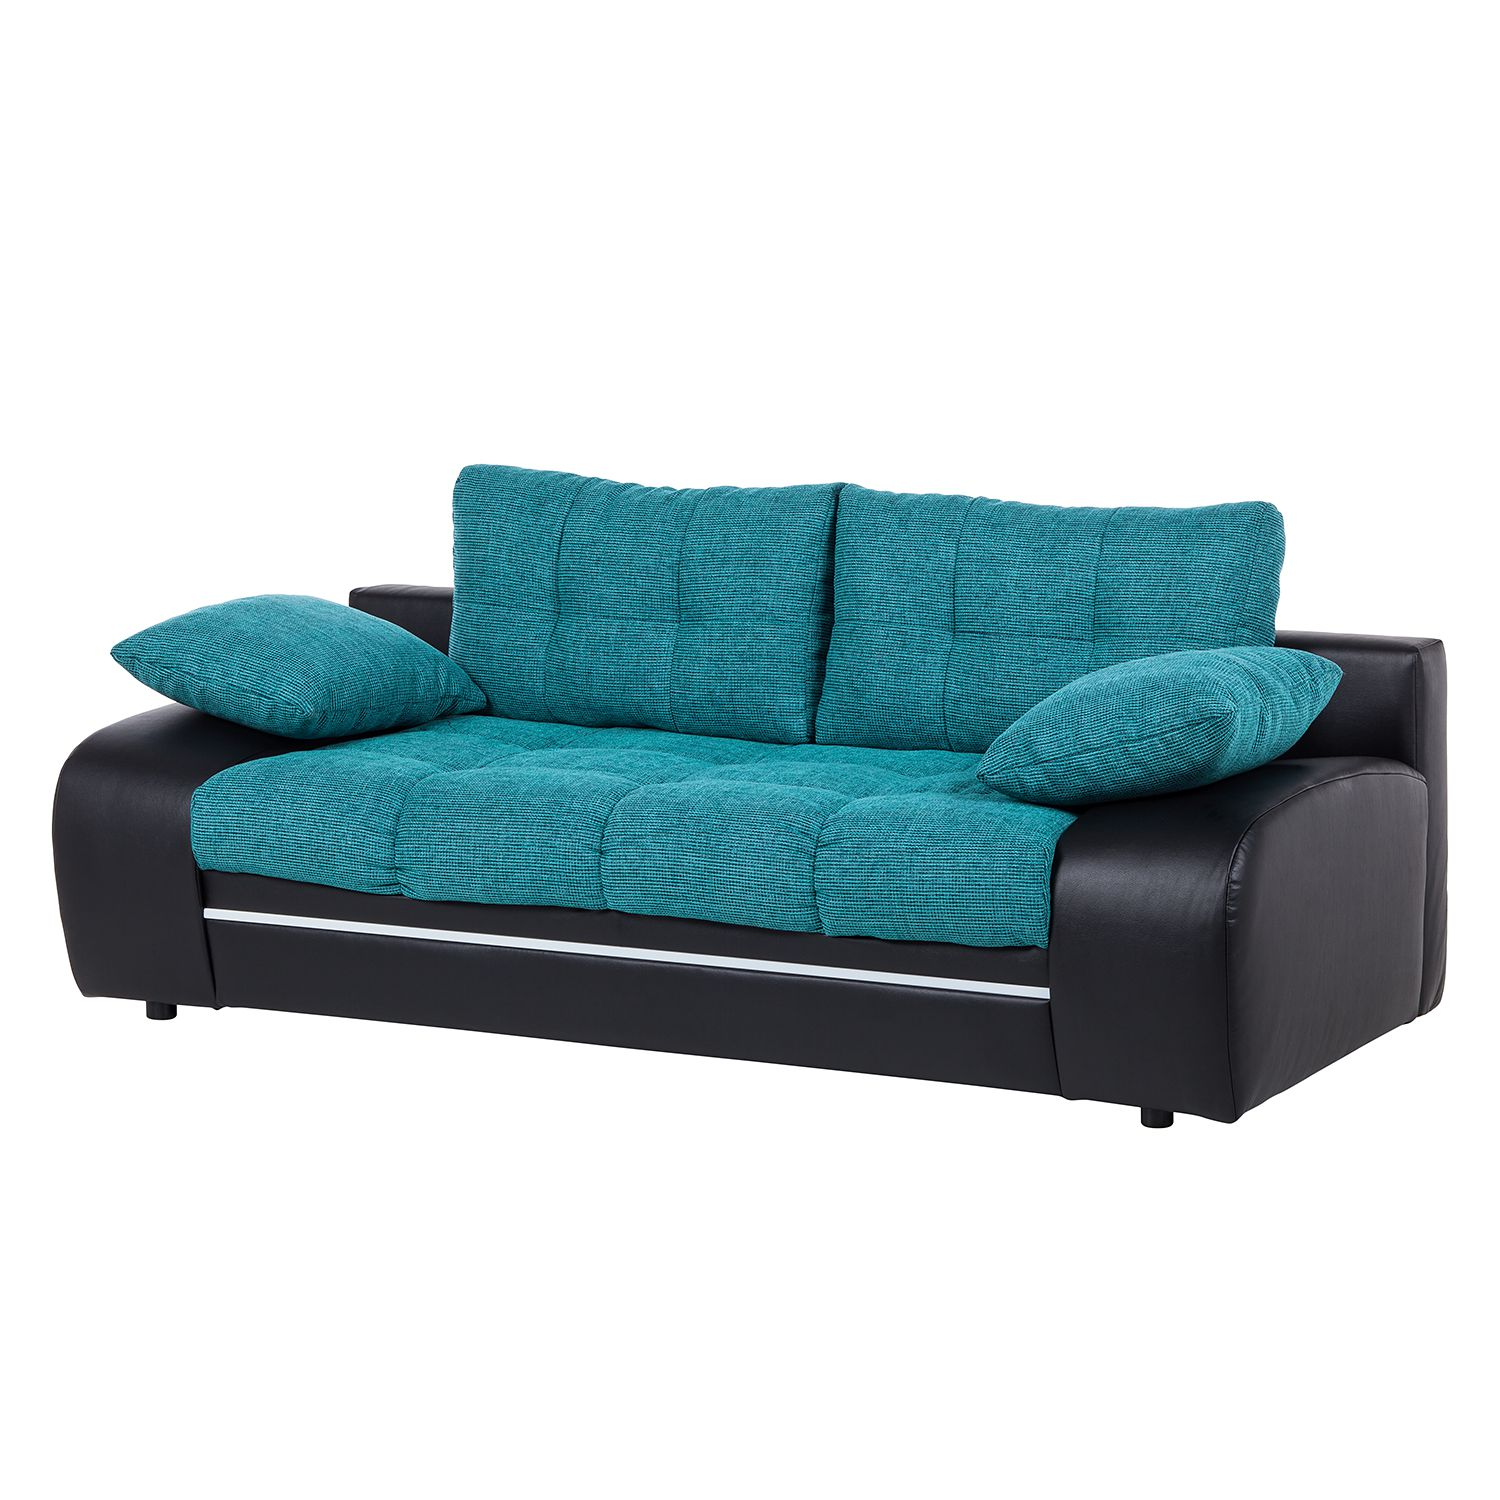 schlafsofa 140 breit sonstige loftscape. Black Bedroom Furniture Sets. Home Design Ideas